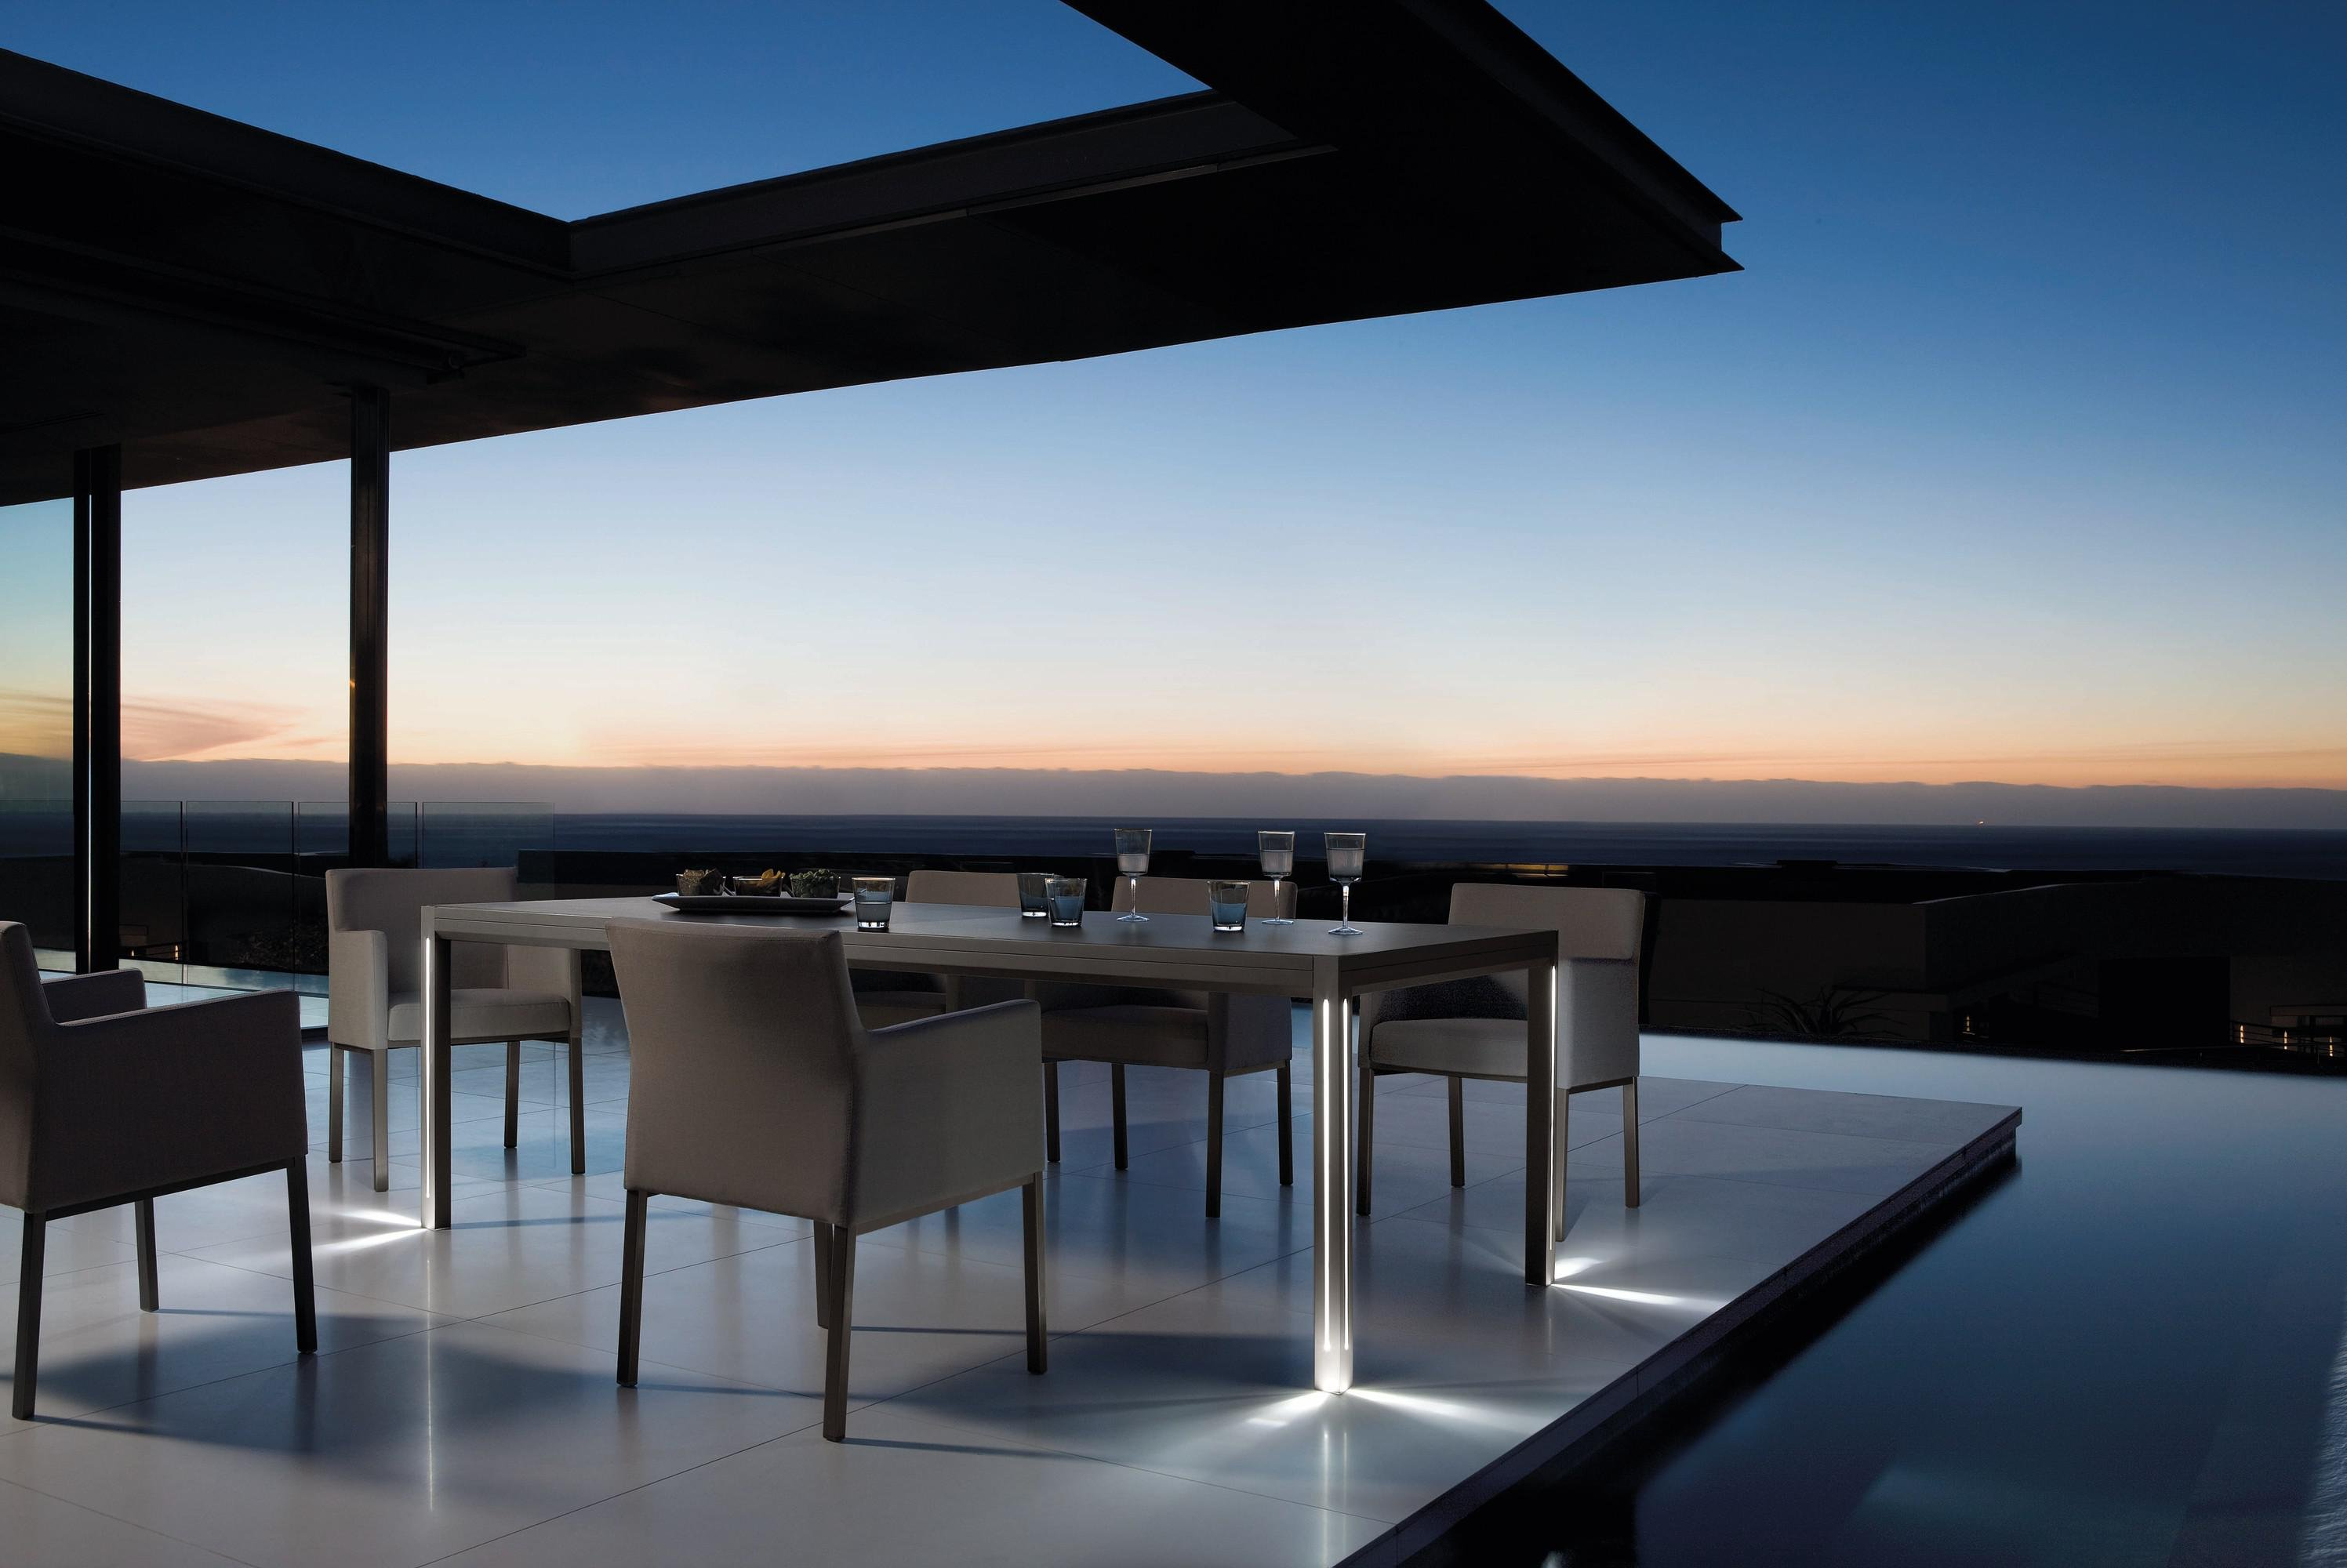 Luna Dining Table from Manutti, designed by Stephane De Winter